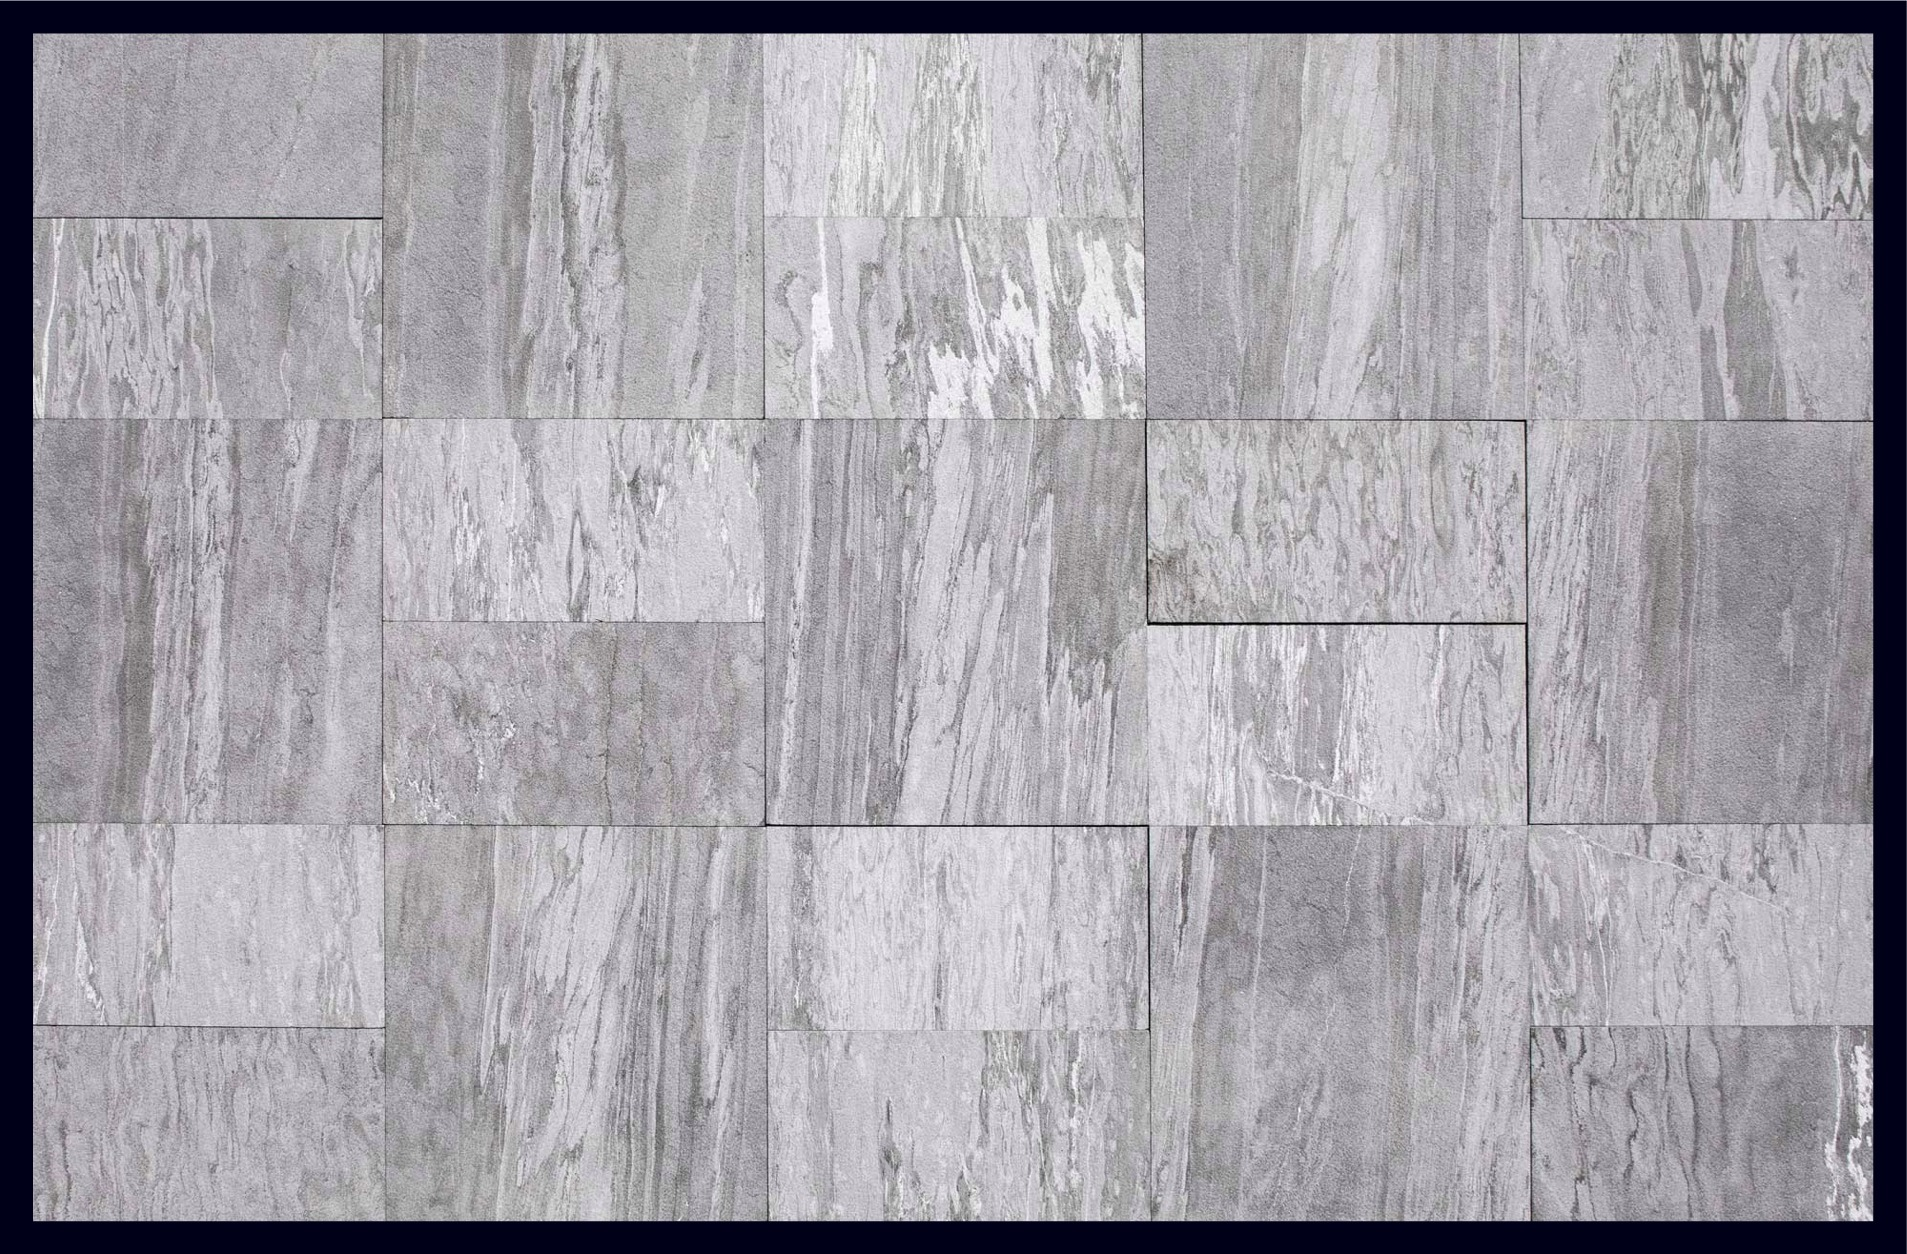 REVOLVEr TEXTURED - (QUARTZITE)VIEW IN GALLERY